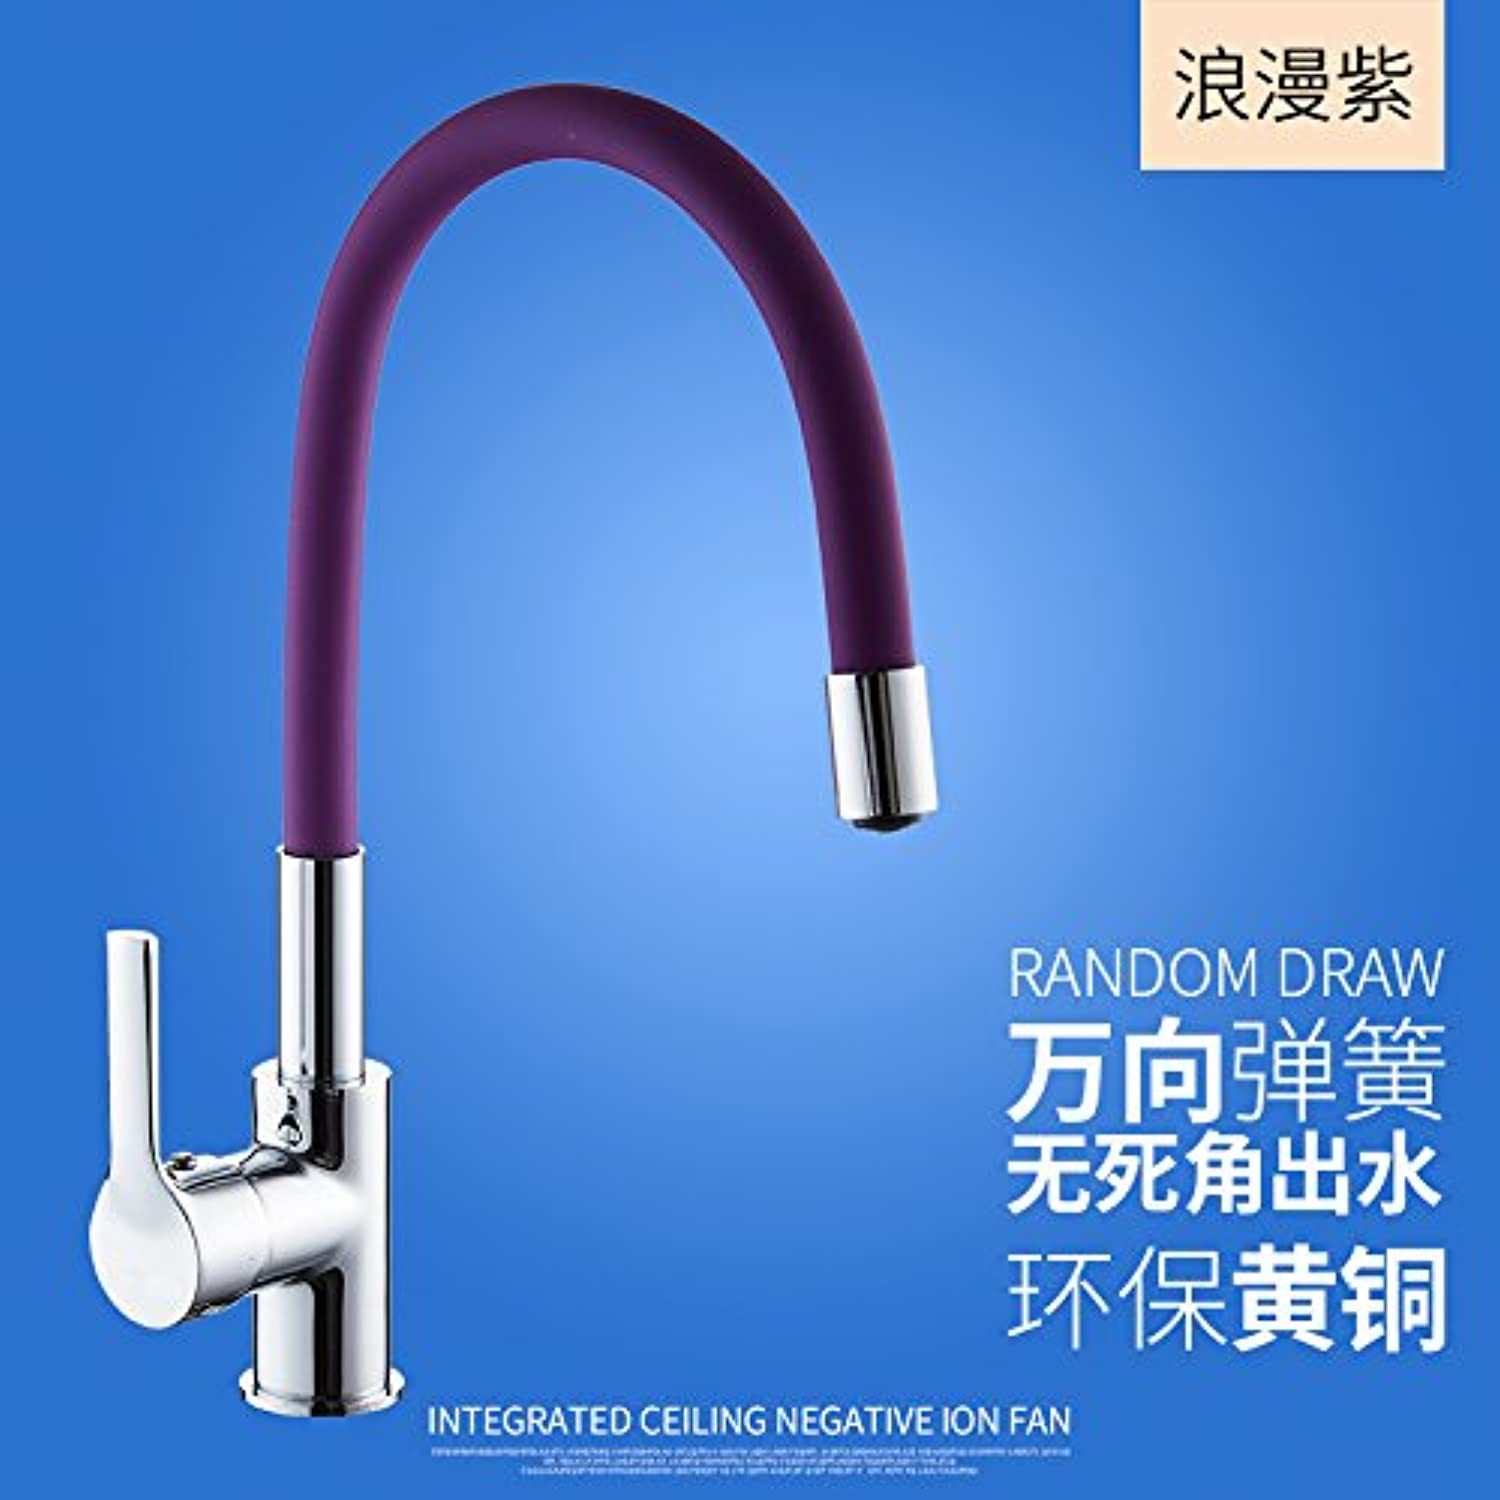 SADASD Contemporary Bathroom Full Copper Basin Faucet Mixer Kitchen Washing 360° redation Basin Sink Mixer Tap Ceramic Spool Single Hole Single Handle Cold Water With G1 2 Hose